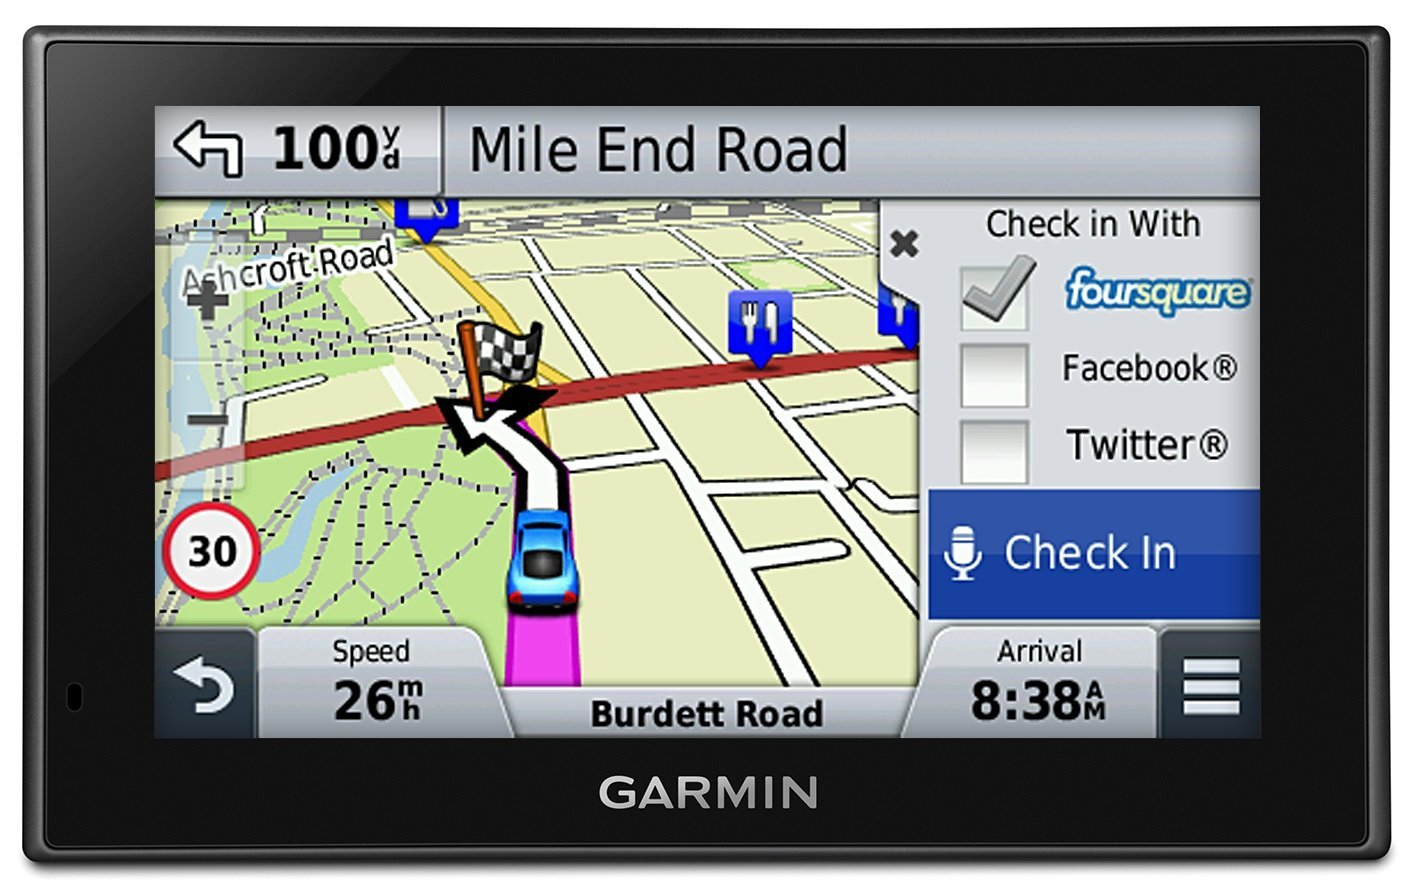 Garmin Nuvi Lmt Bluetooth Gps Satnav Free Lifetime Maps Traffic